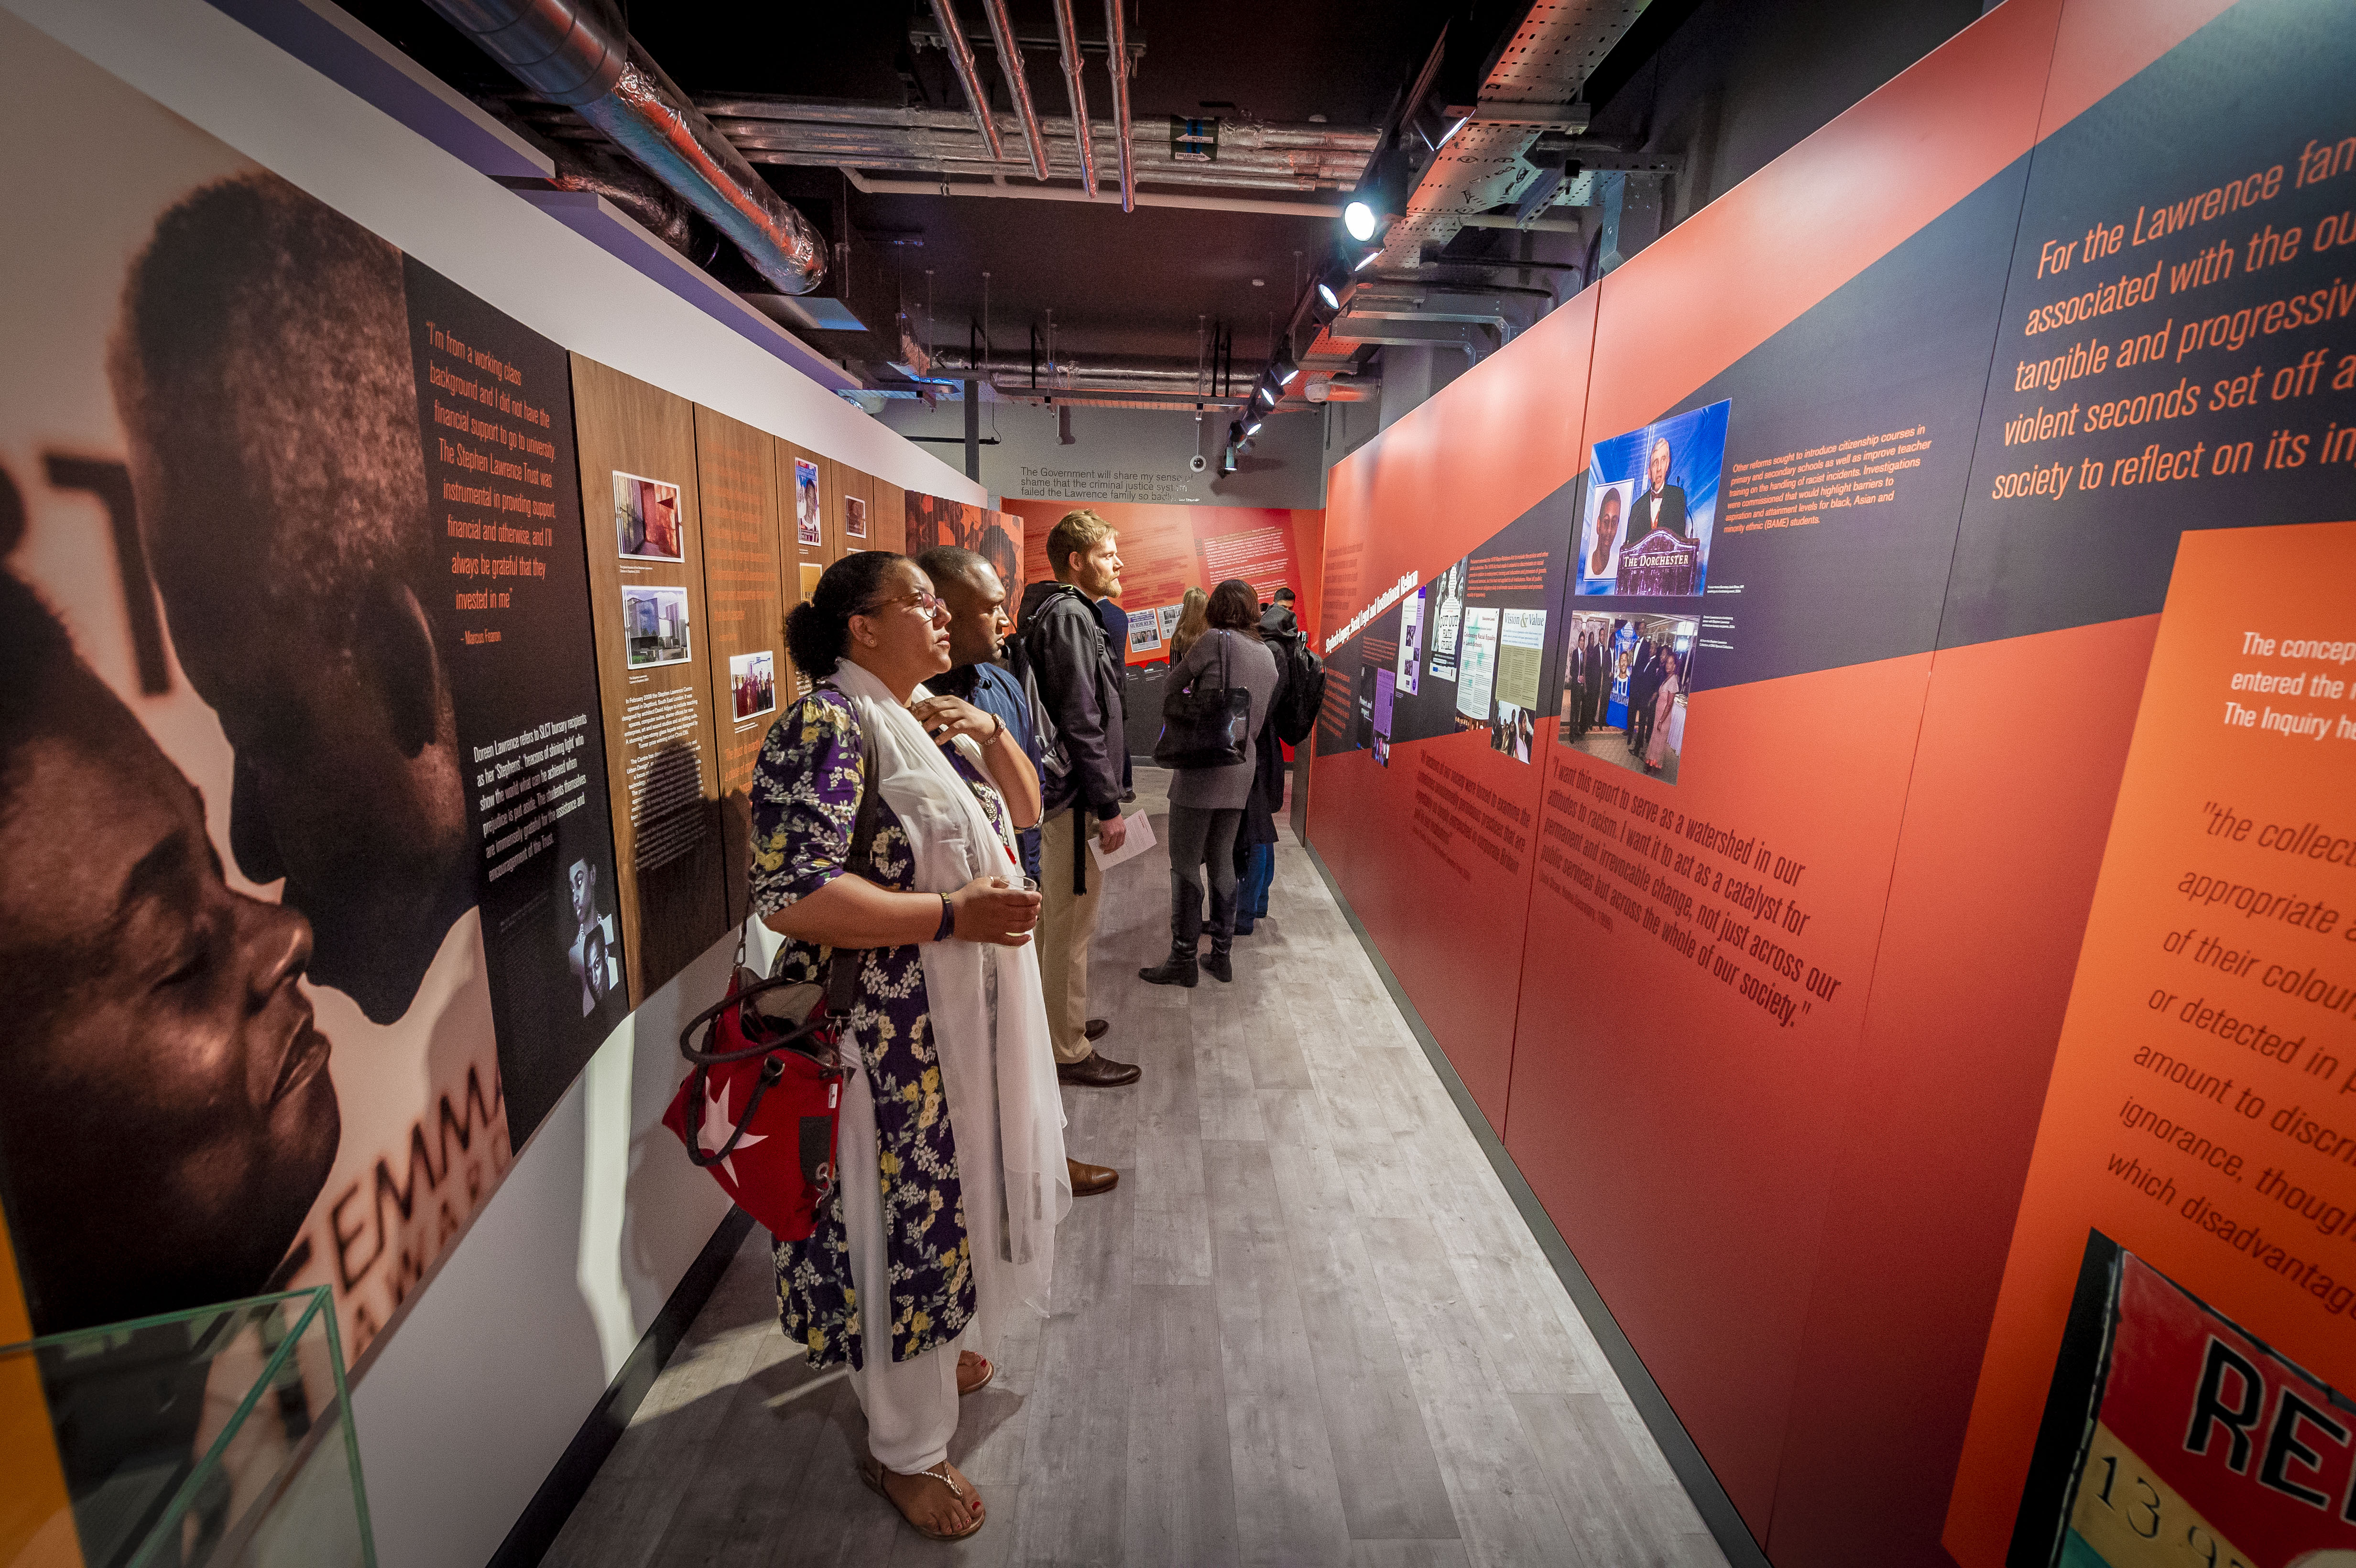 Visitors inside the permanent exhibition at the Stephen Lawrence Research Centre